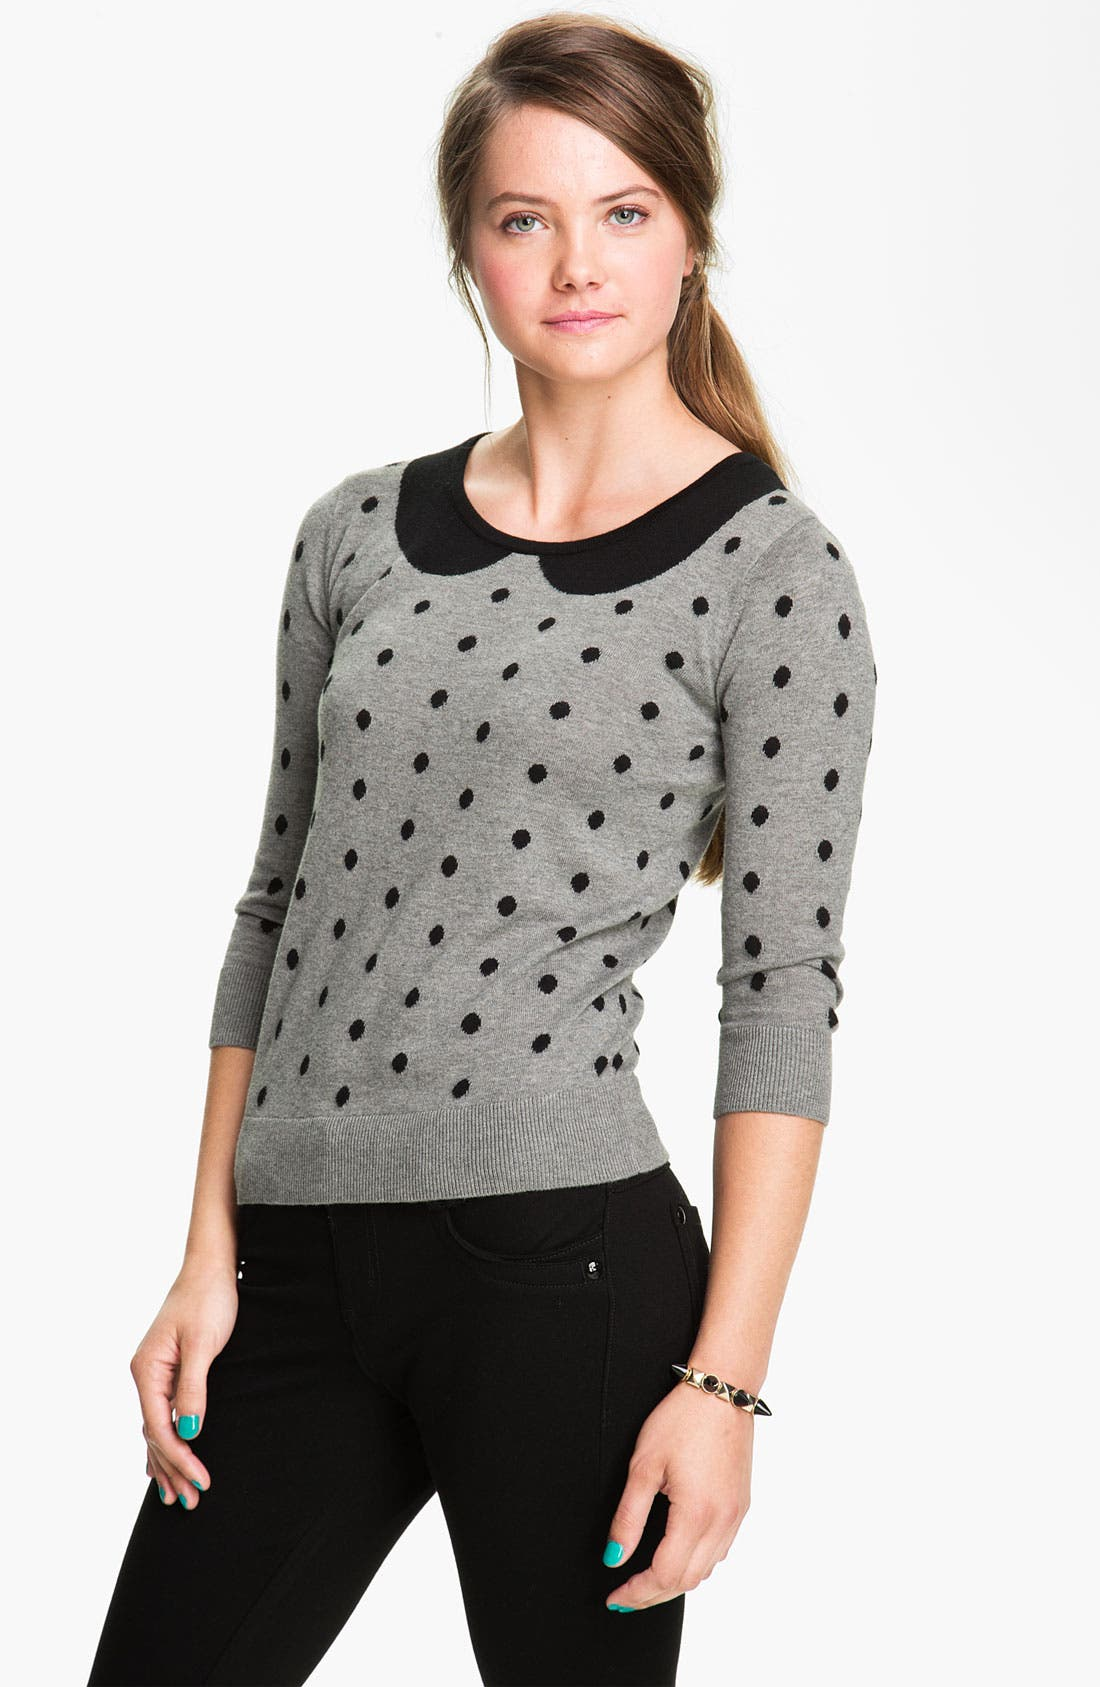 Main Image - Frenchi® Polka Dot Peter Pan Sweater (Juniors)